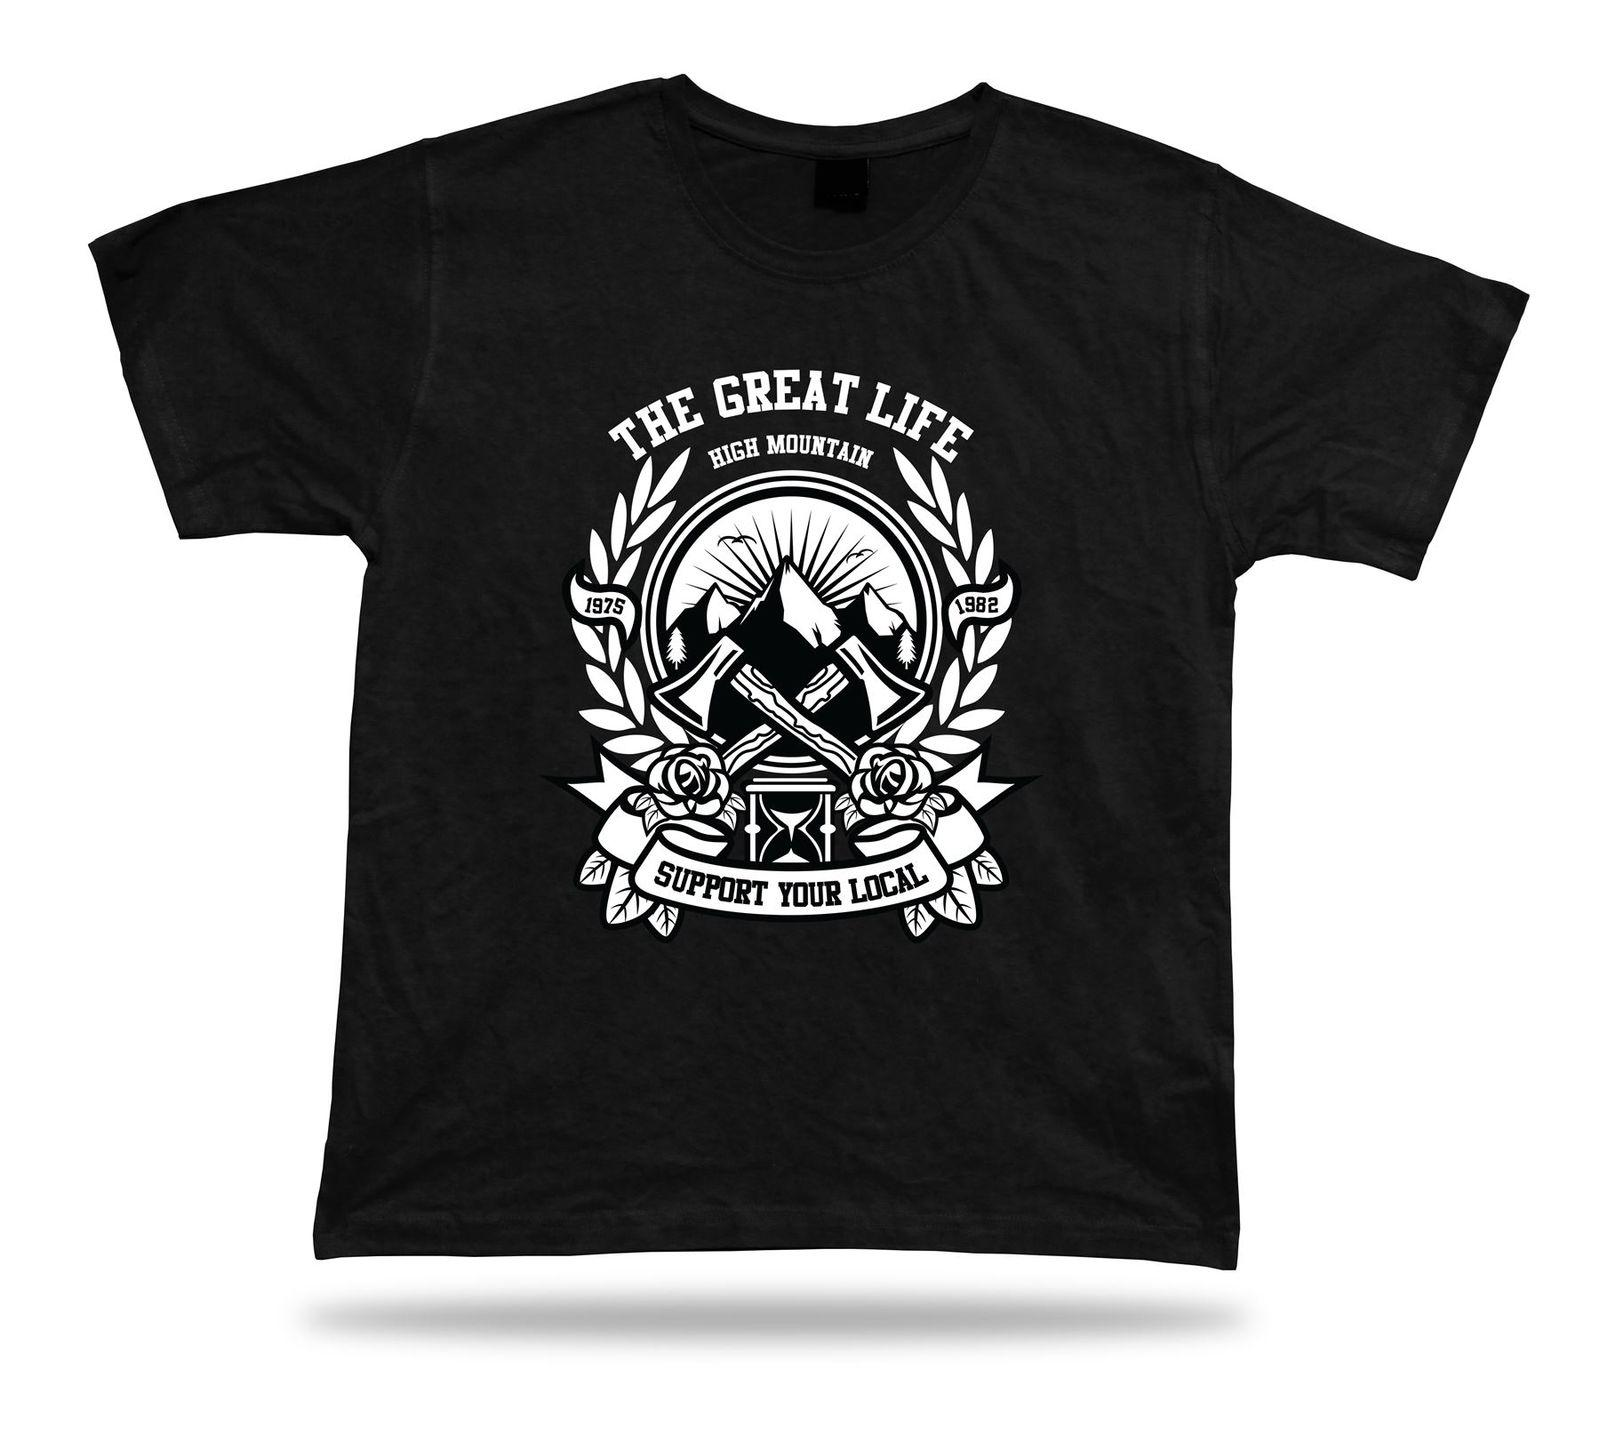 0bc8247d The Great Life Support Your Local Axe T Shirt Tee Design Vintage Gift  Apparel Make Your Own Tee Shirt Design Crazy T Shirt Design From Cooltees,  ...